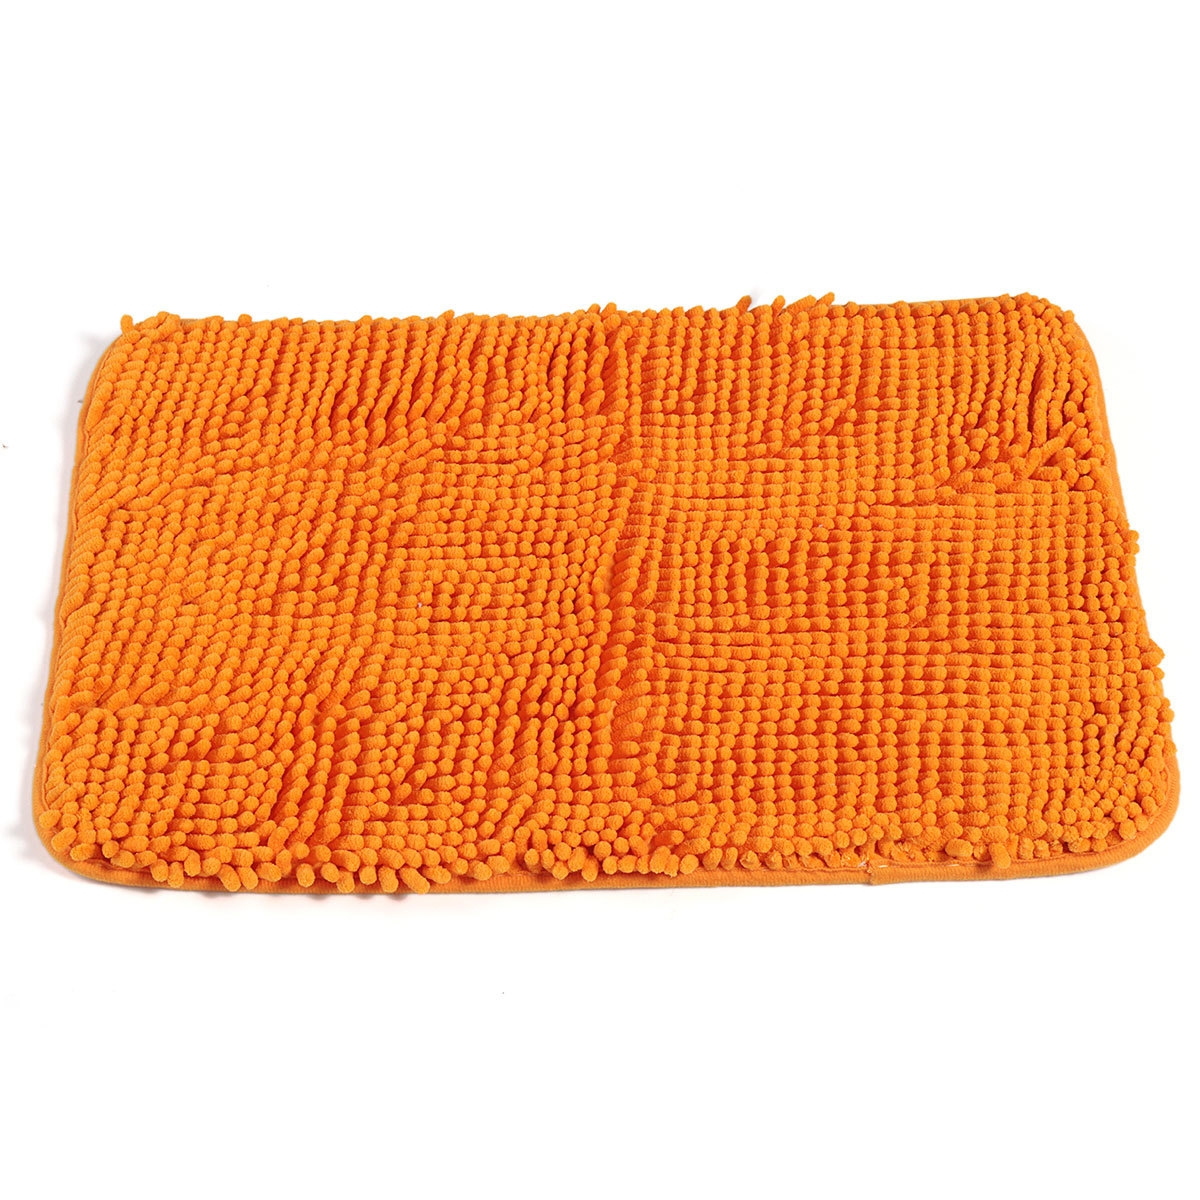 Permalink to Absorbent Bath Mat